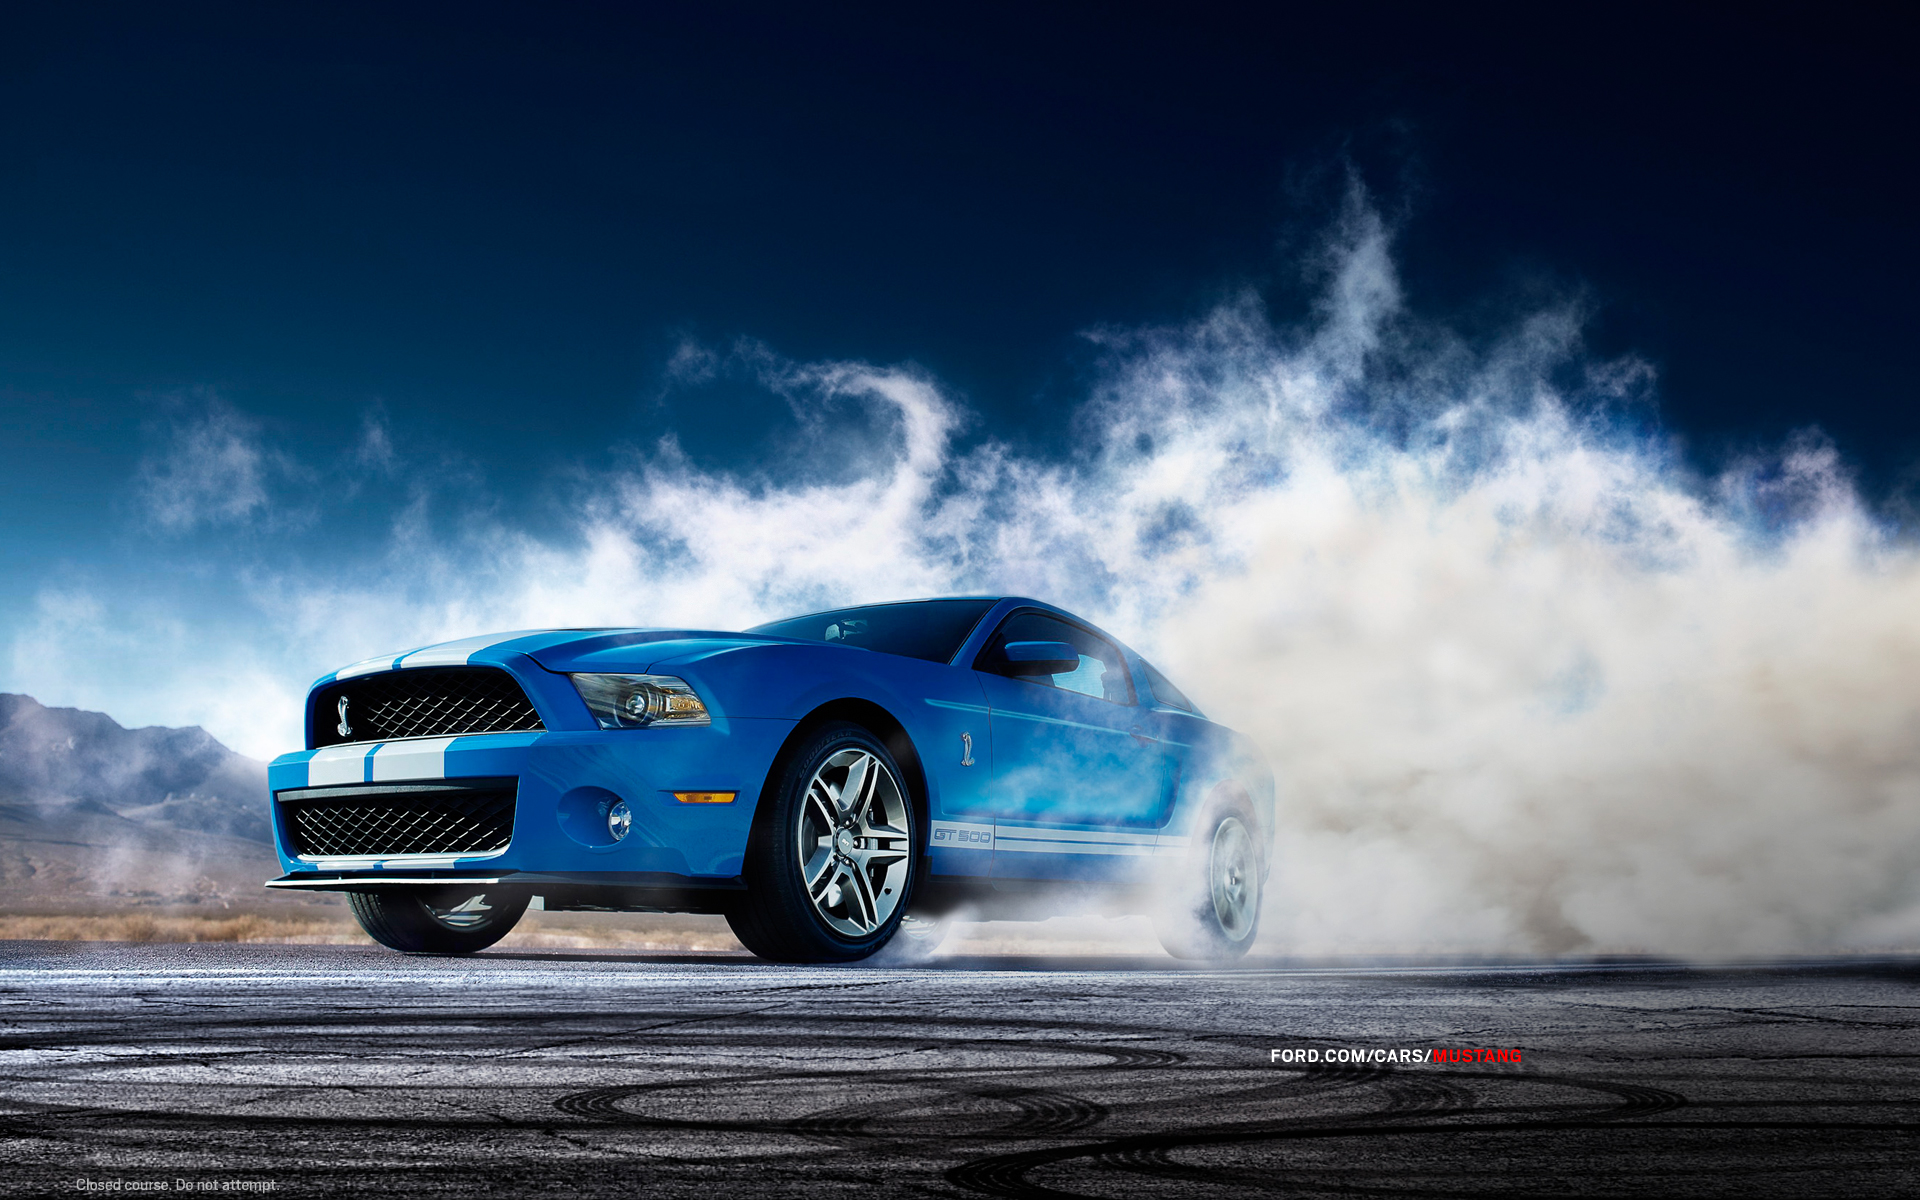 2014 Ford Mustang Shelby Gt500 >> Shelby Mustang Wallpaper - WallpaperSafari